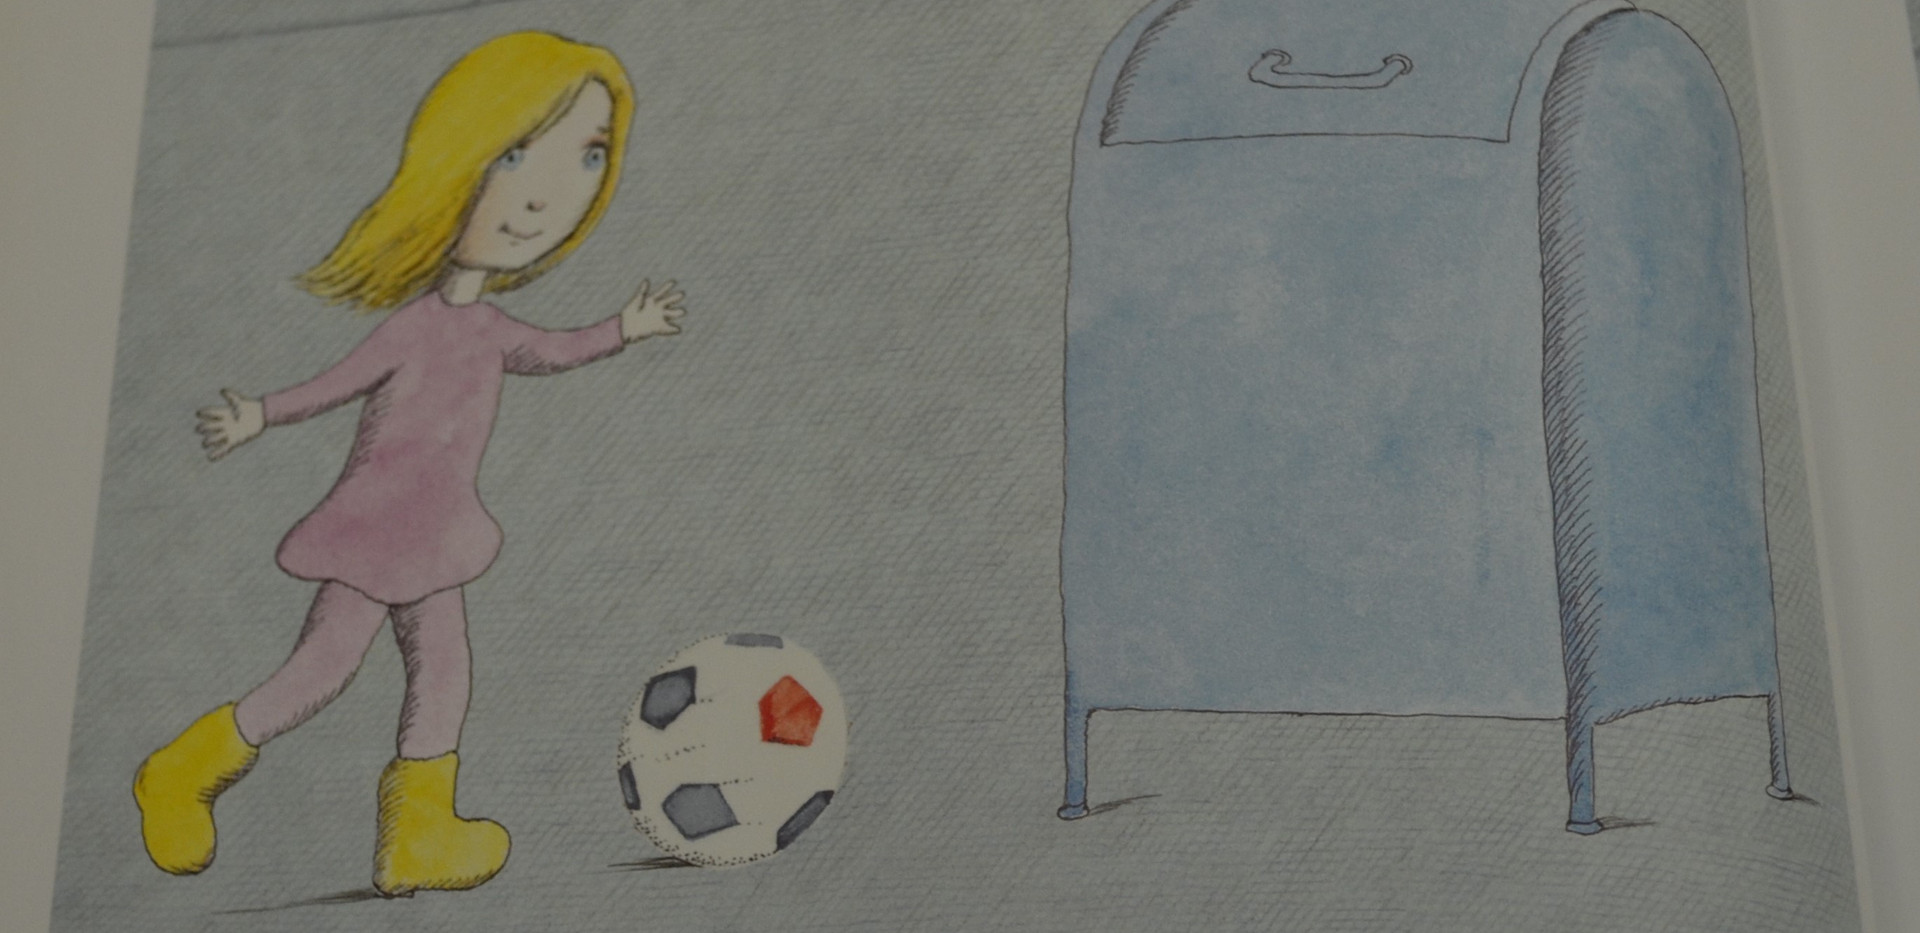 Page 7.jpgSis, Peter. Madlenka, Soccer Star. Farrar, Straus and Giroux, 2010. p.7. Osborne Collection of Early Children's Books.